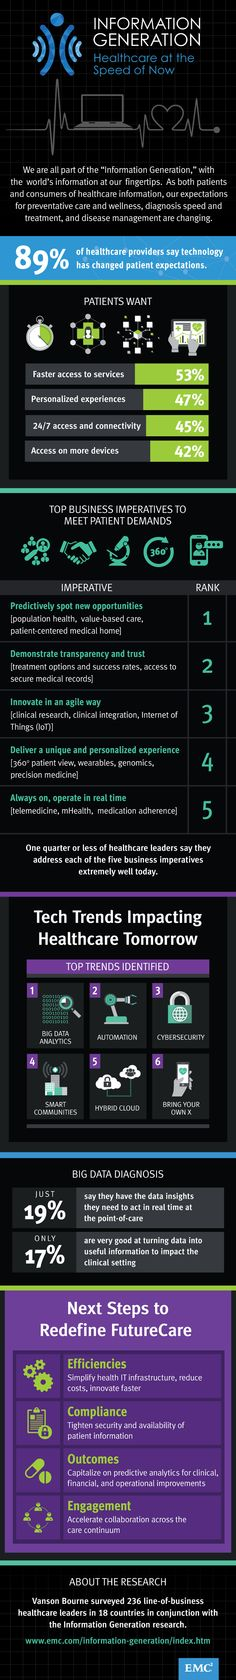 tech trends that are impacting healthcare